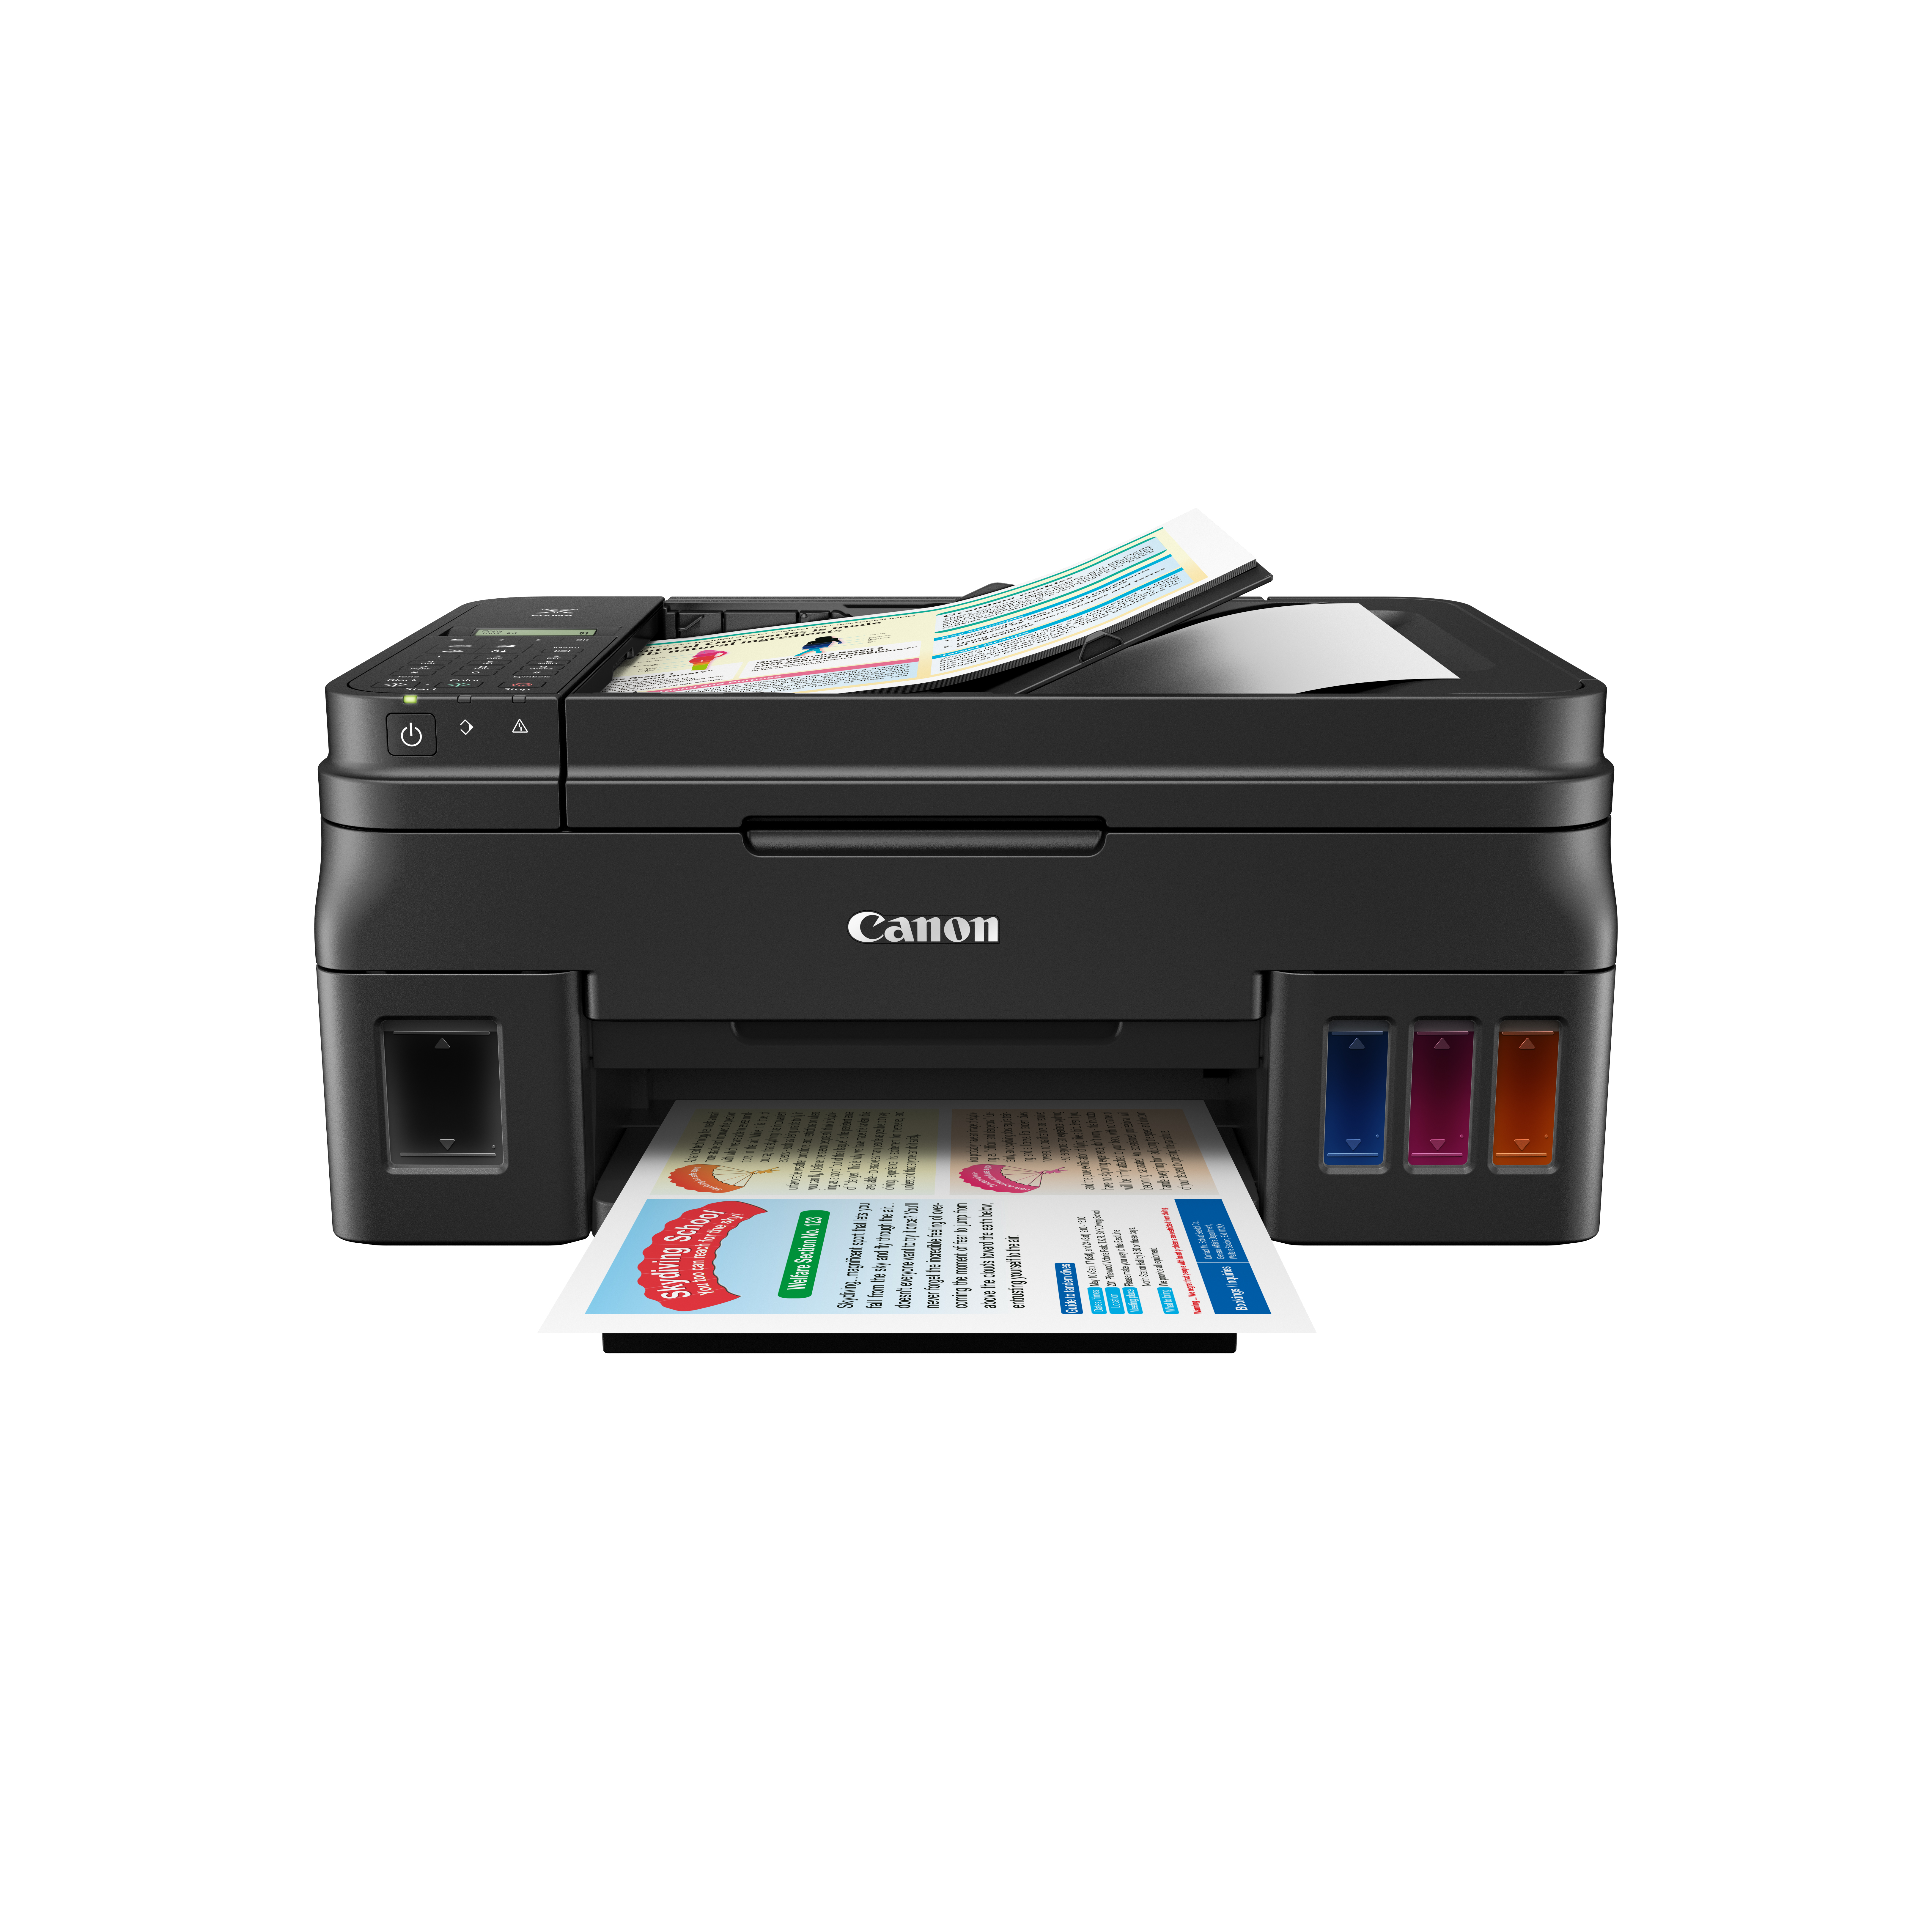 Canon Has A New Line Of Home Printers With Refillable Ink Canisters Instead Of Cartridges